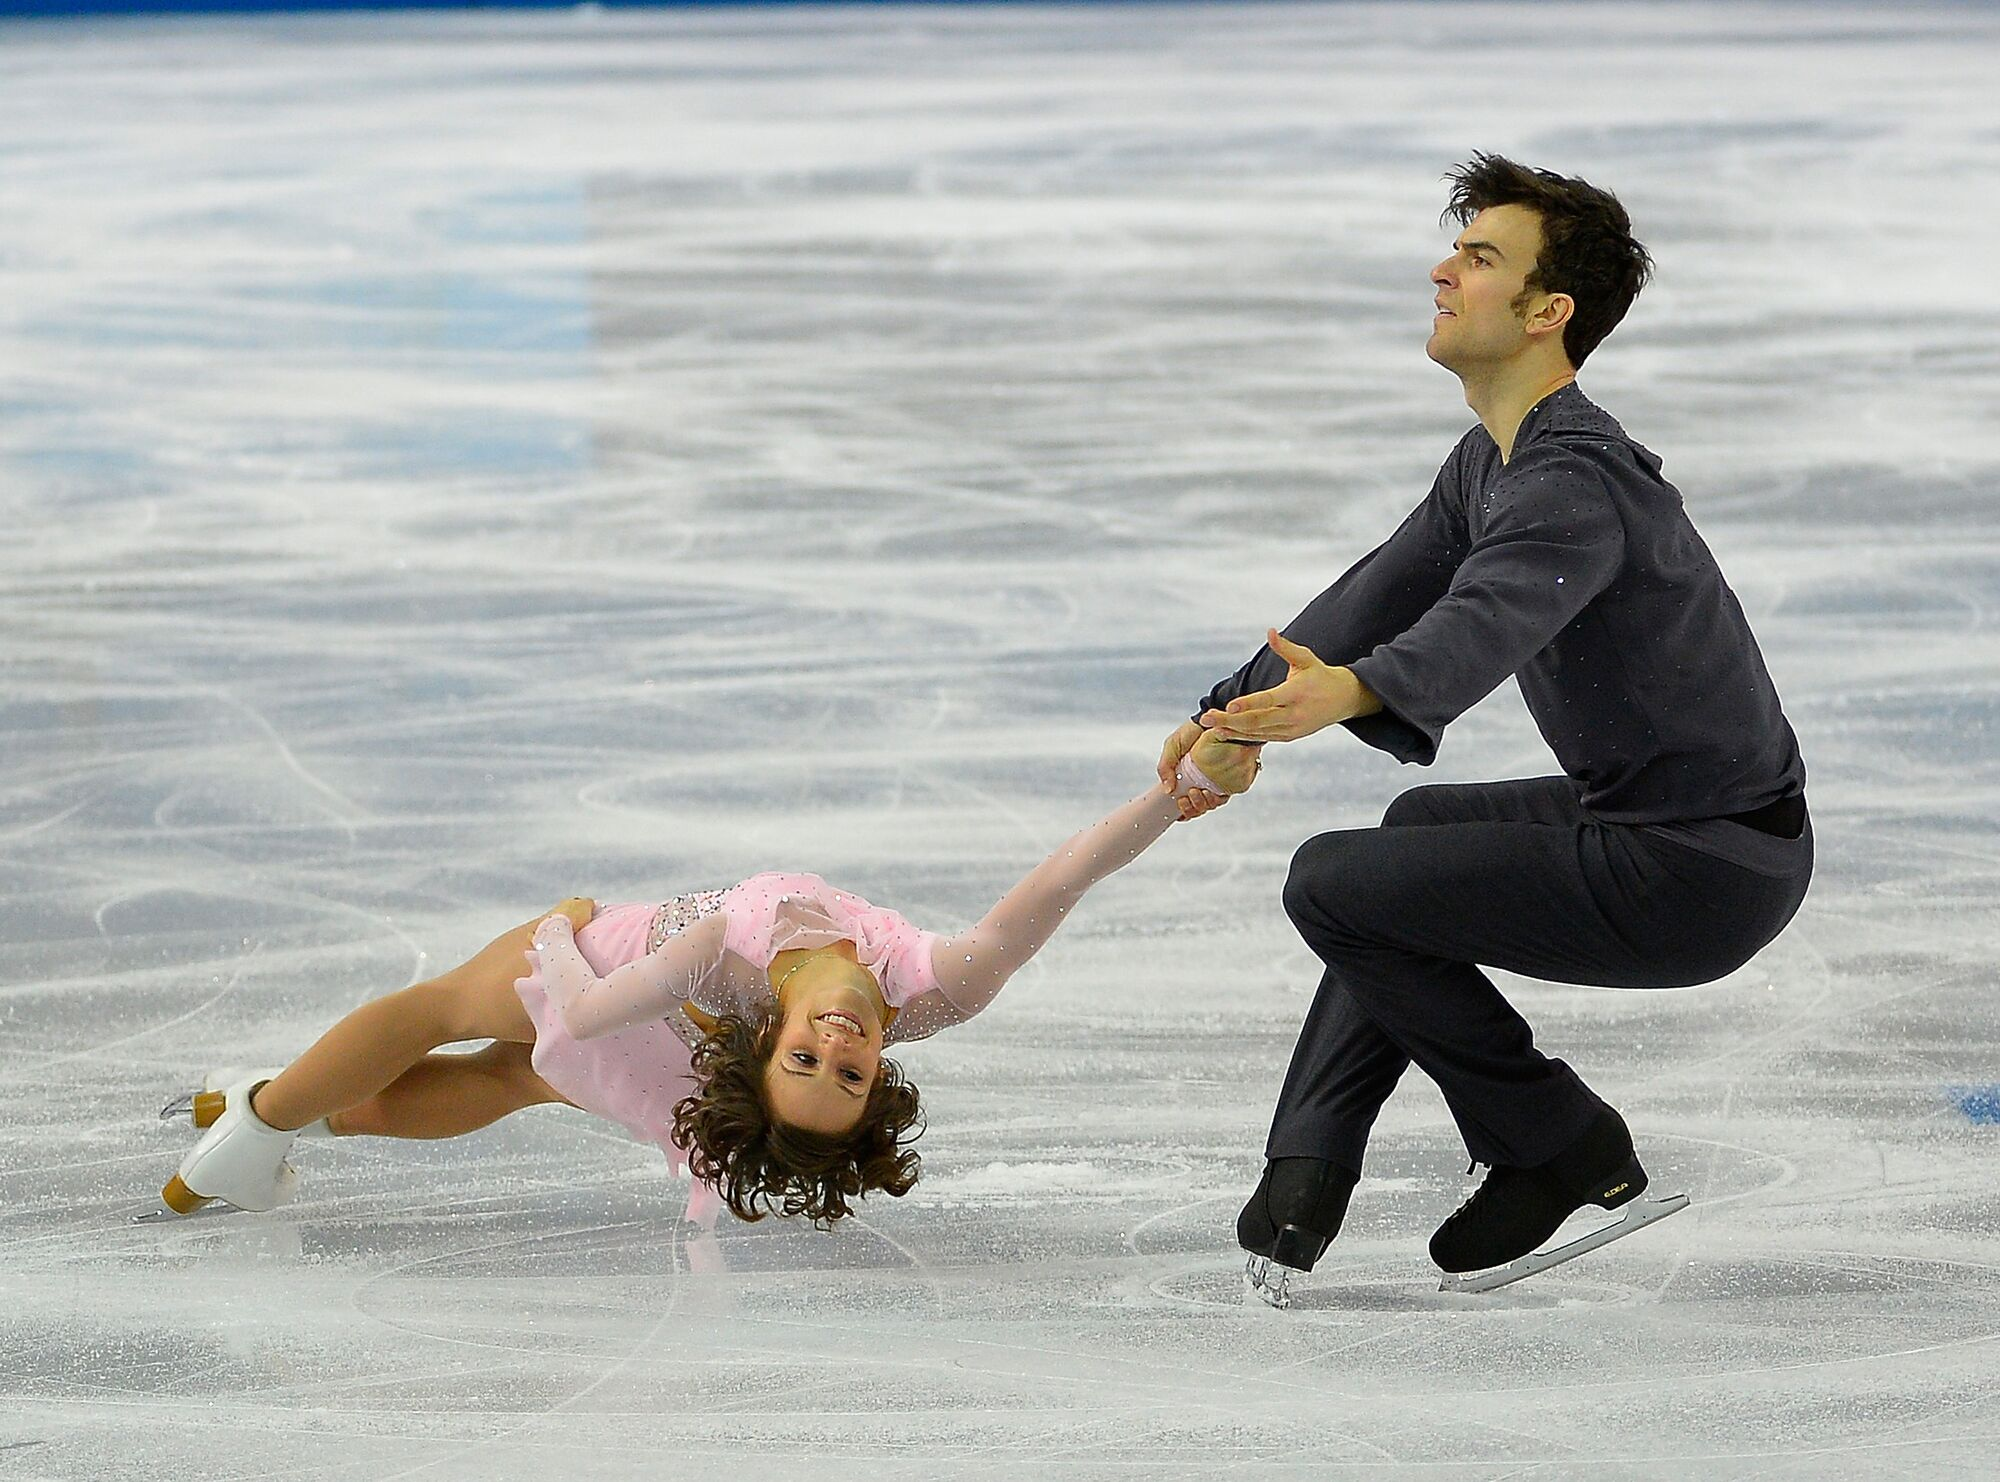 Eric Radford and  partner Meagan Duhamel have  consistently ranked among the top three skating pairs  couples in  the world.